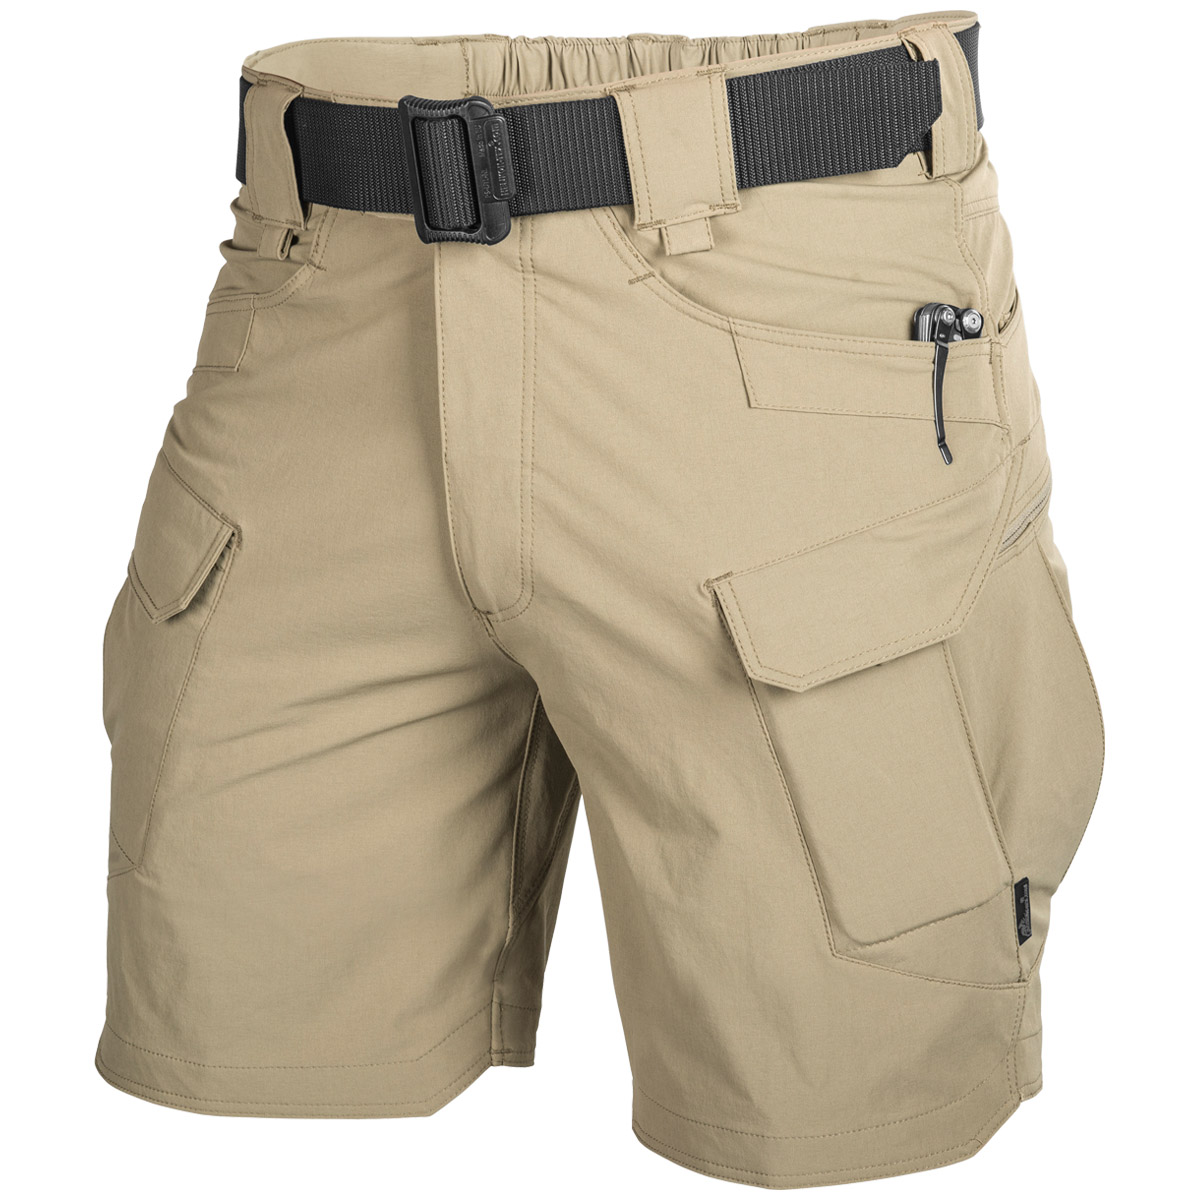 Details about Helikon Outdoor Tactical Mens Cargo Shorts Security Patrol  Military Combat Khaki cb93004e57e